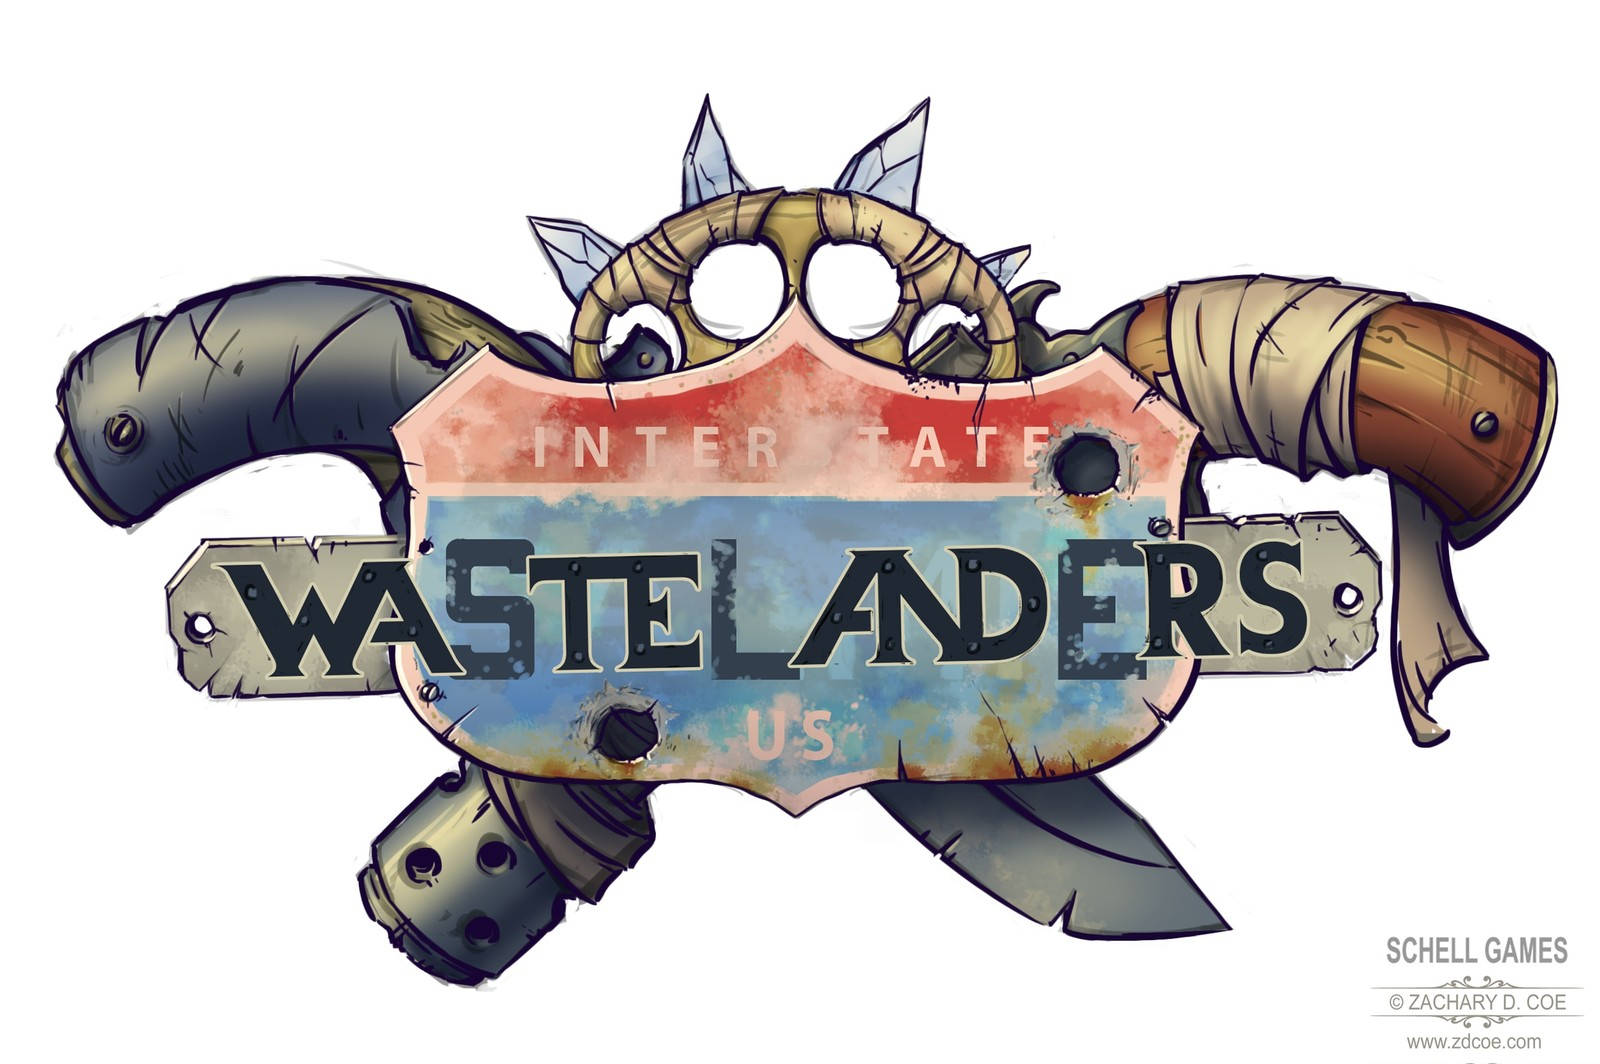 WASTELANDERS LOGO Original Final by Zachary D. Coe